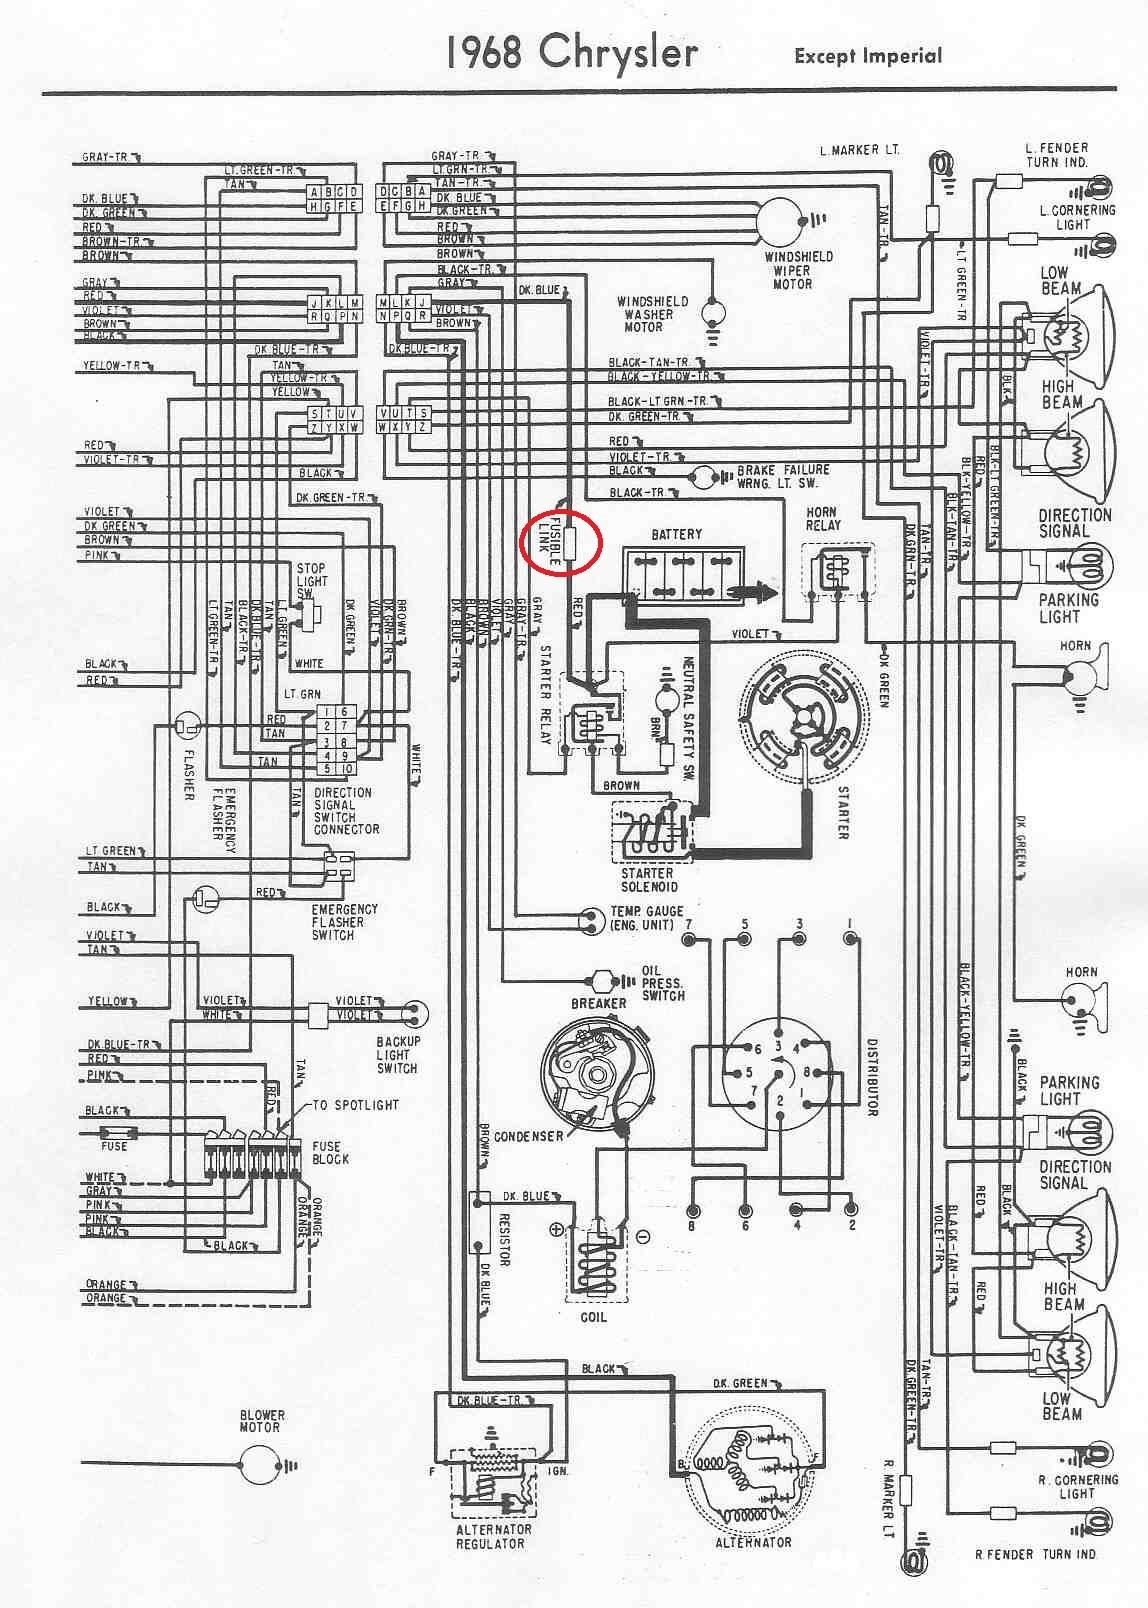 hight resolution of 1950 chrysler engine diagram wiring library 1950 chrysler wiring diagram